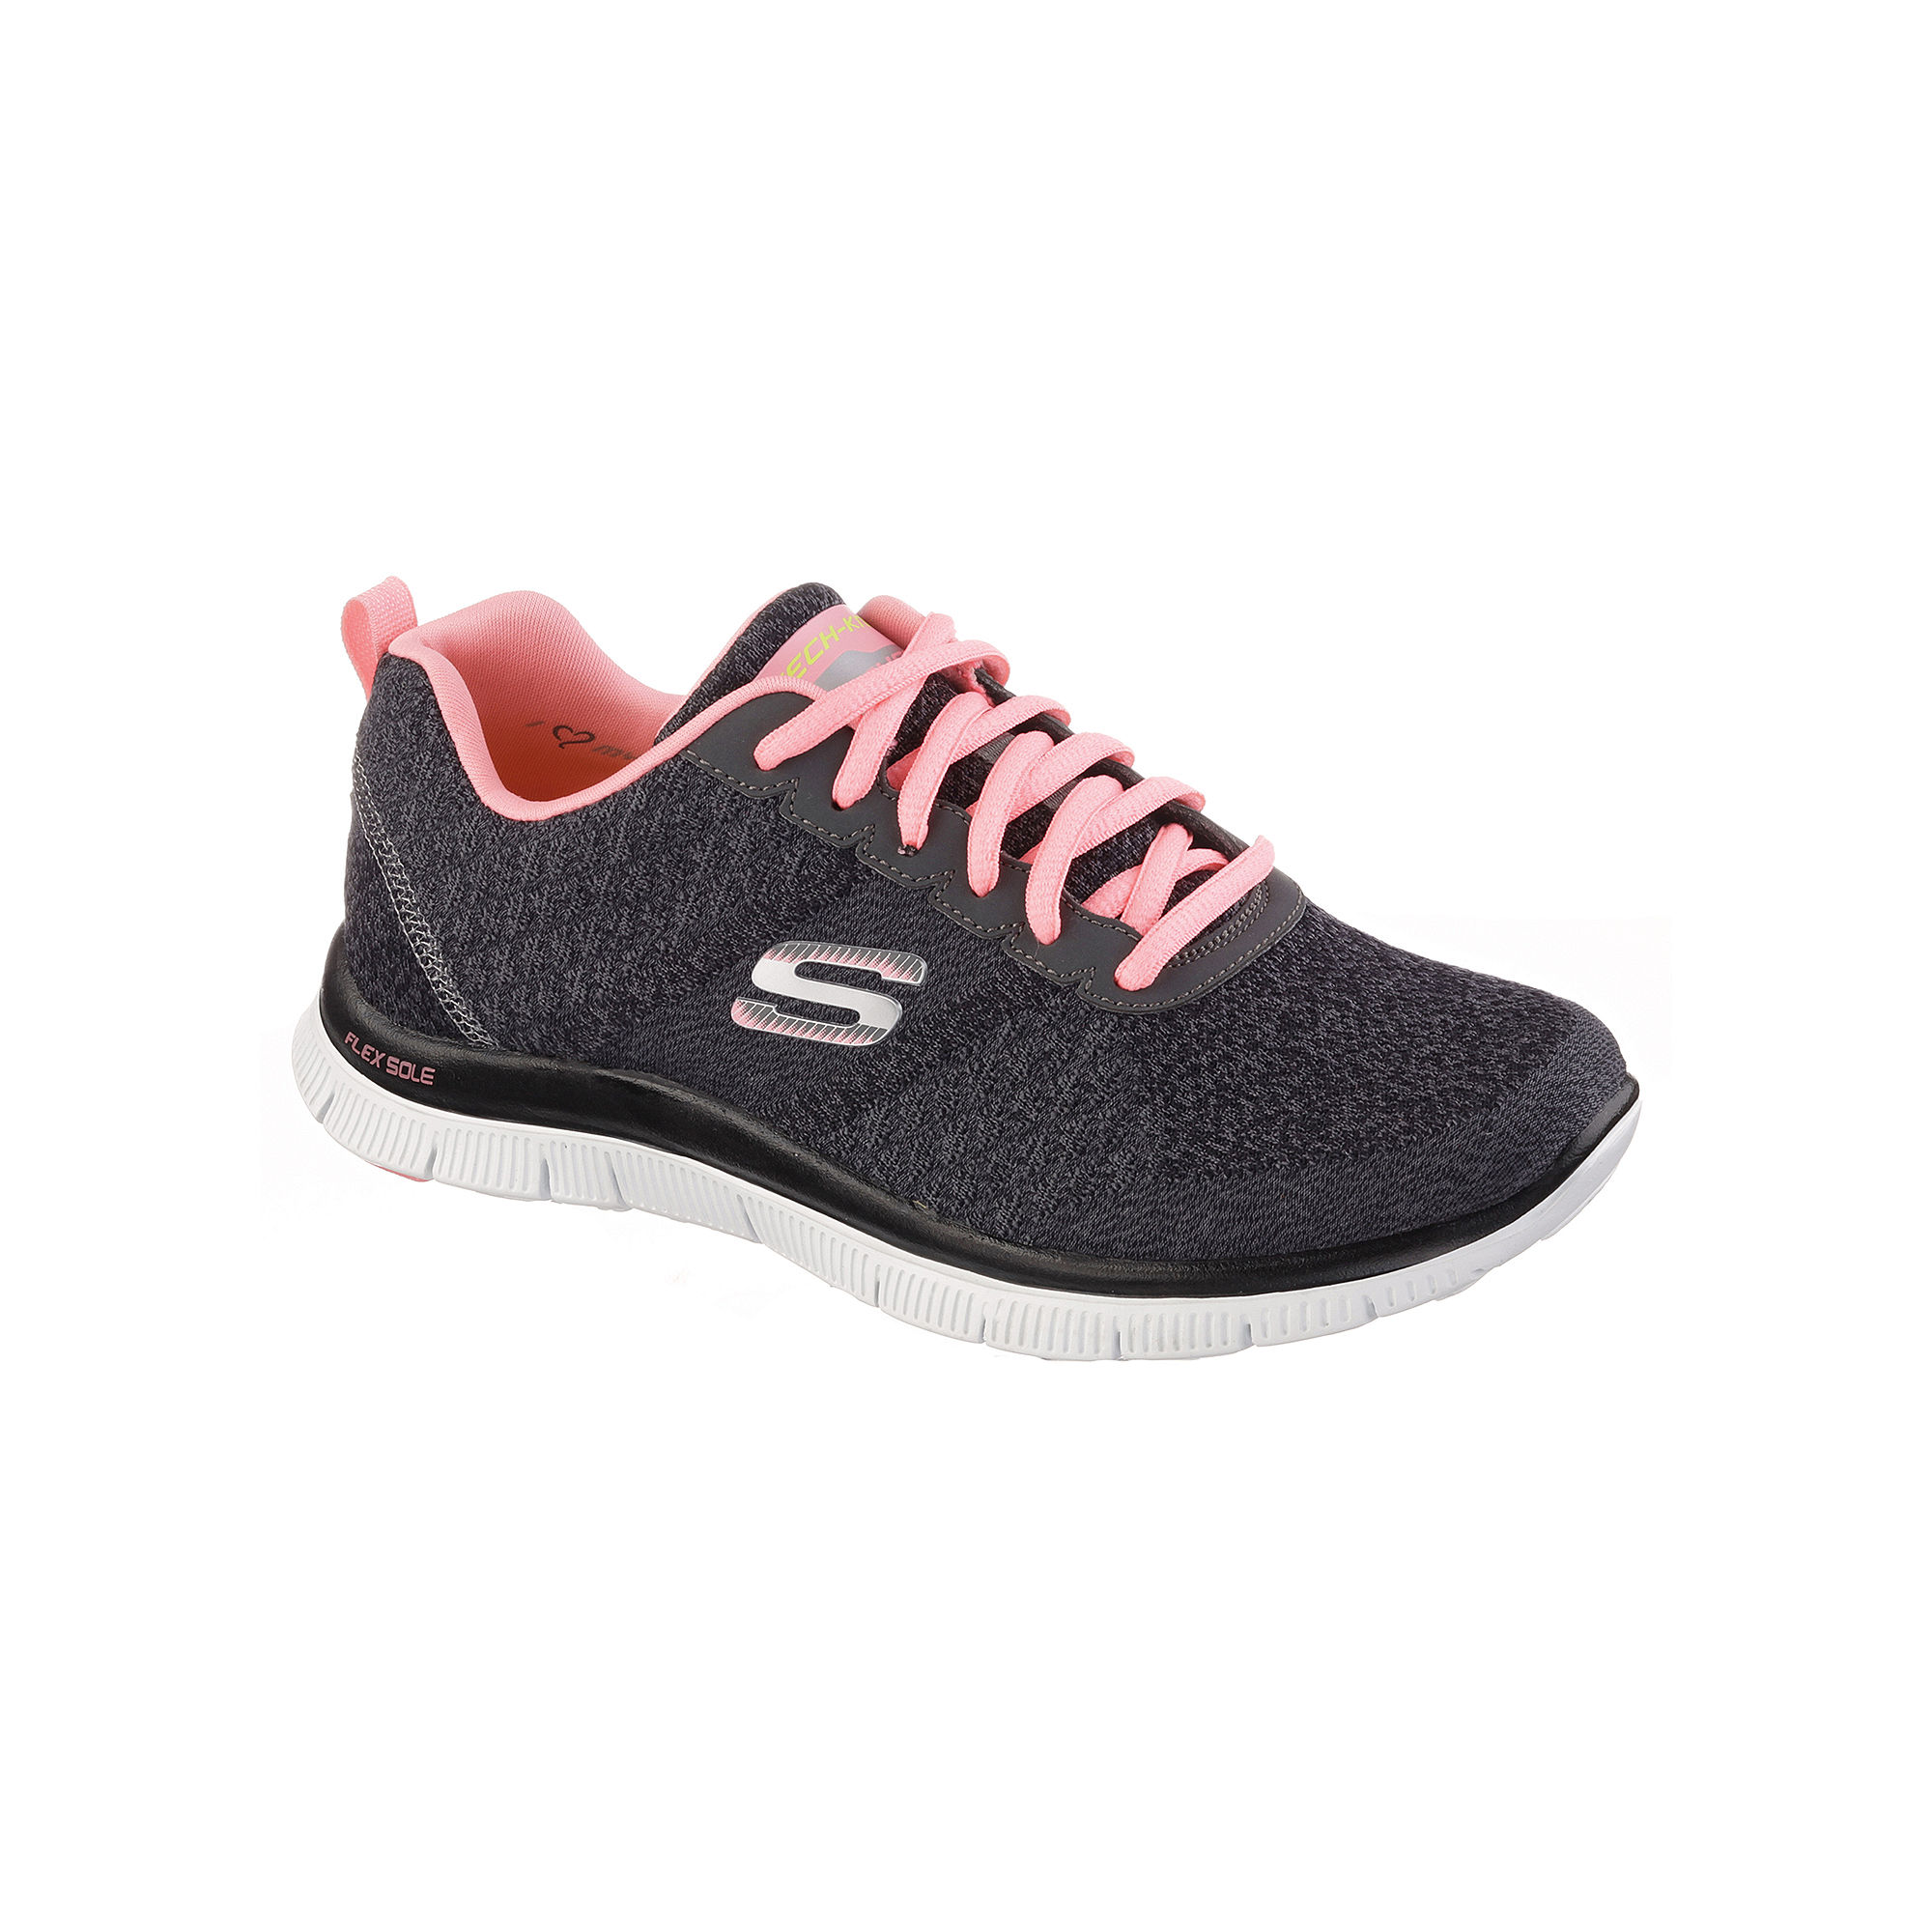 UPC 888222539832 product image for Skechers Flex Appeal Simply Sweet  Athletic Shoes  Grey  Pink